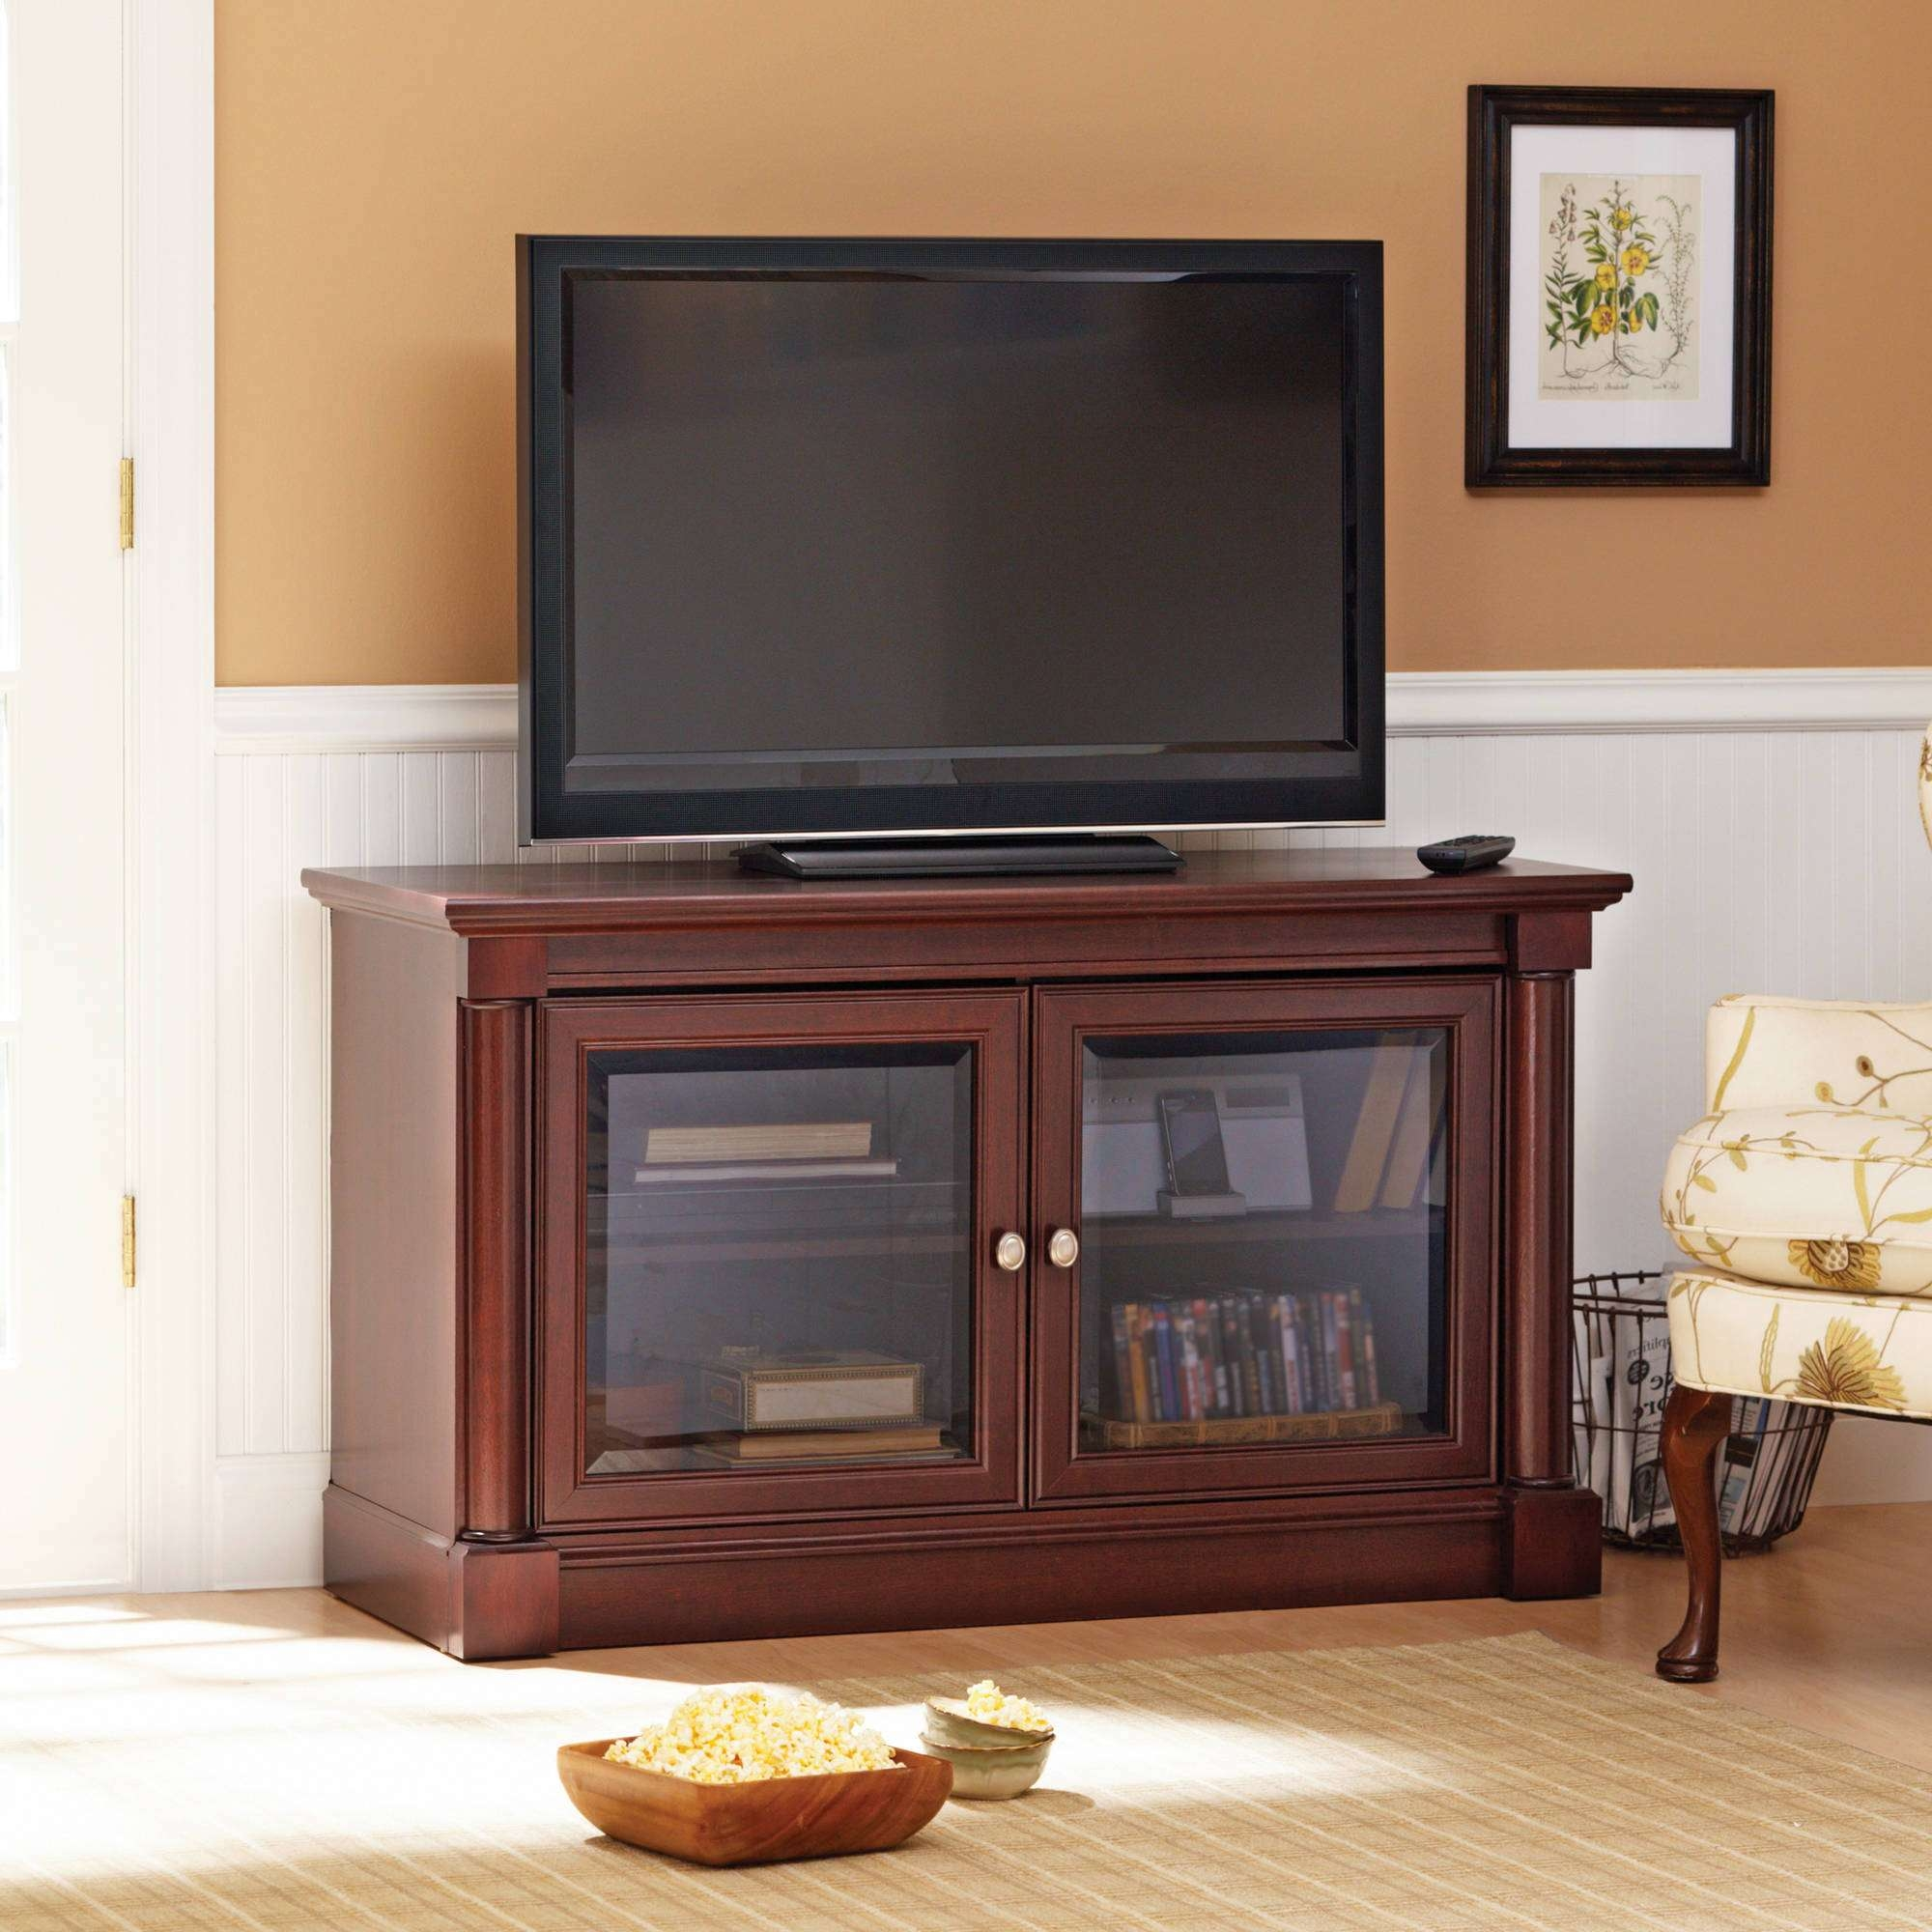 Better Homes And Gardens Ashwood Road Cherry Tv Stand, For Tvs Up With Cherry Wood Tv Cabinets (View 6 of 20)